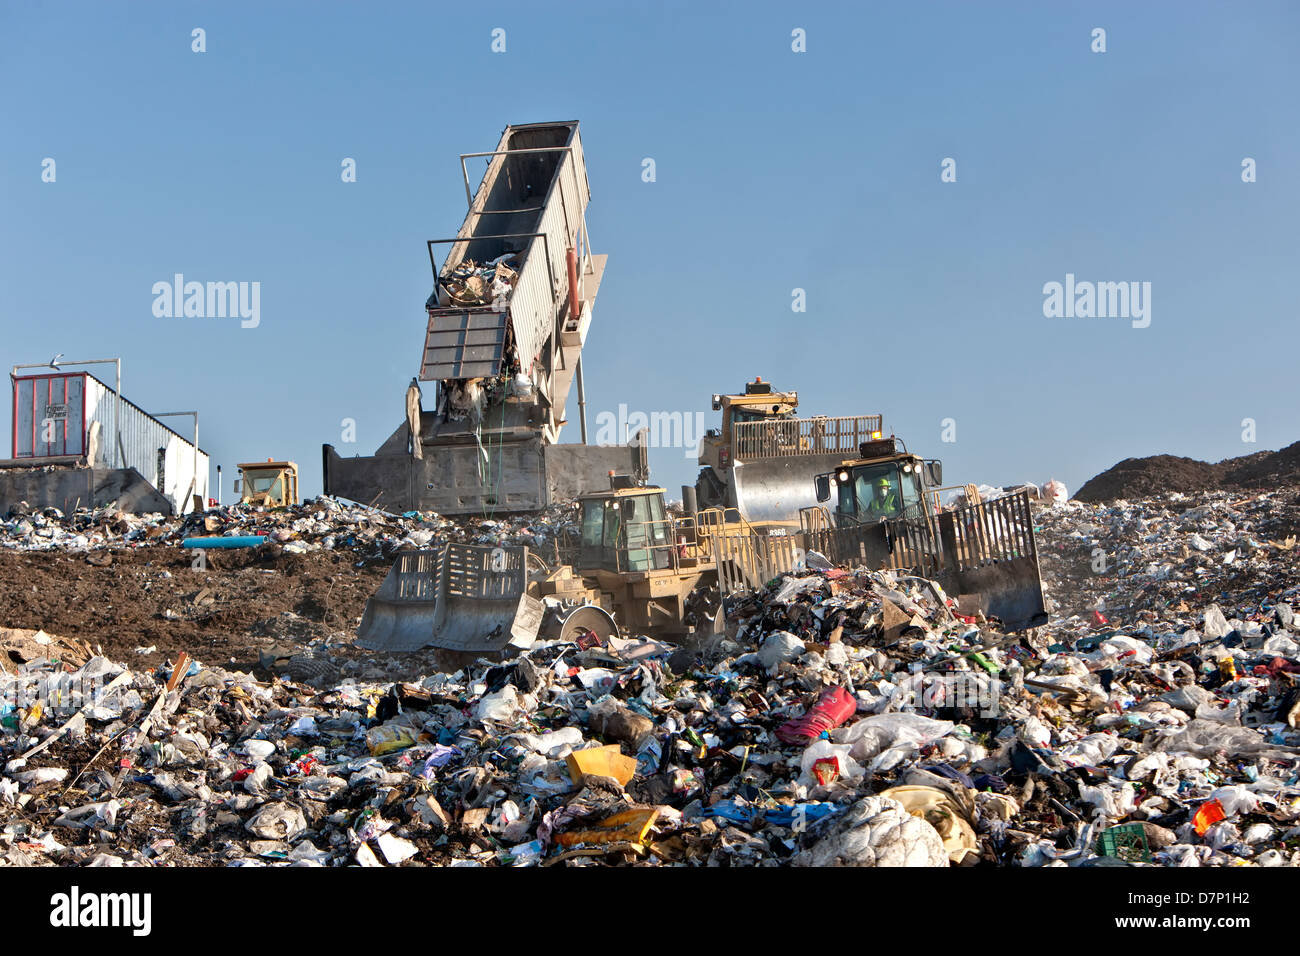 Landfill, tractor compactors pushing trash.  Tipper dumping semi trailer containing collected garbage. - Stock Image